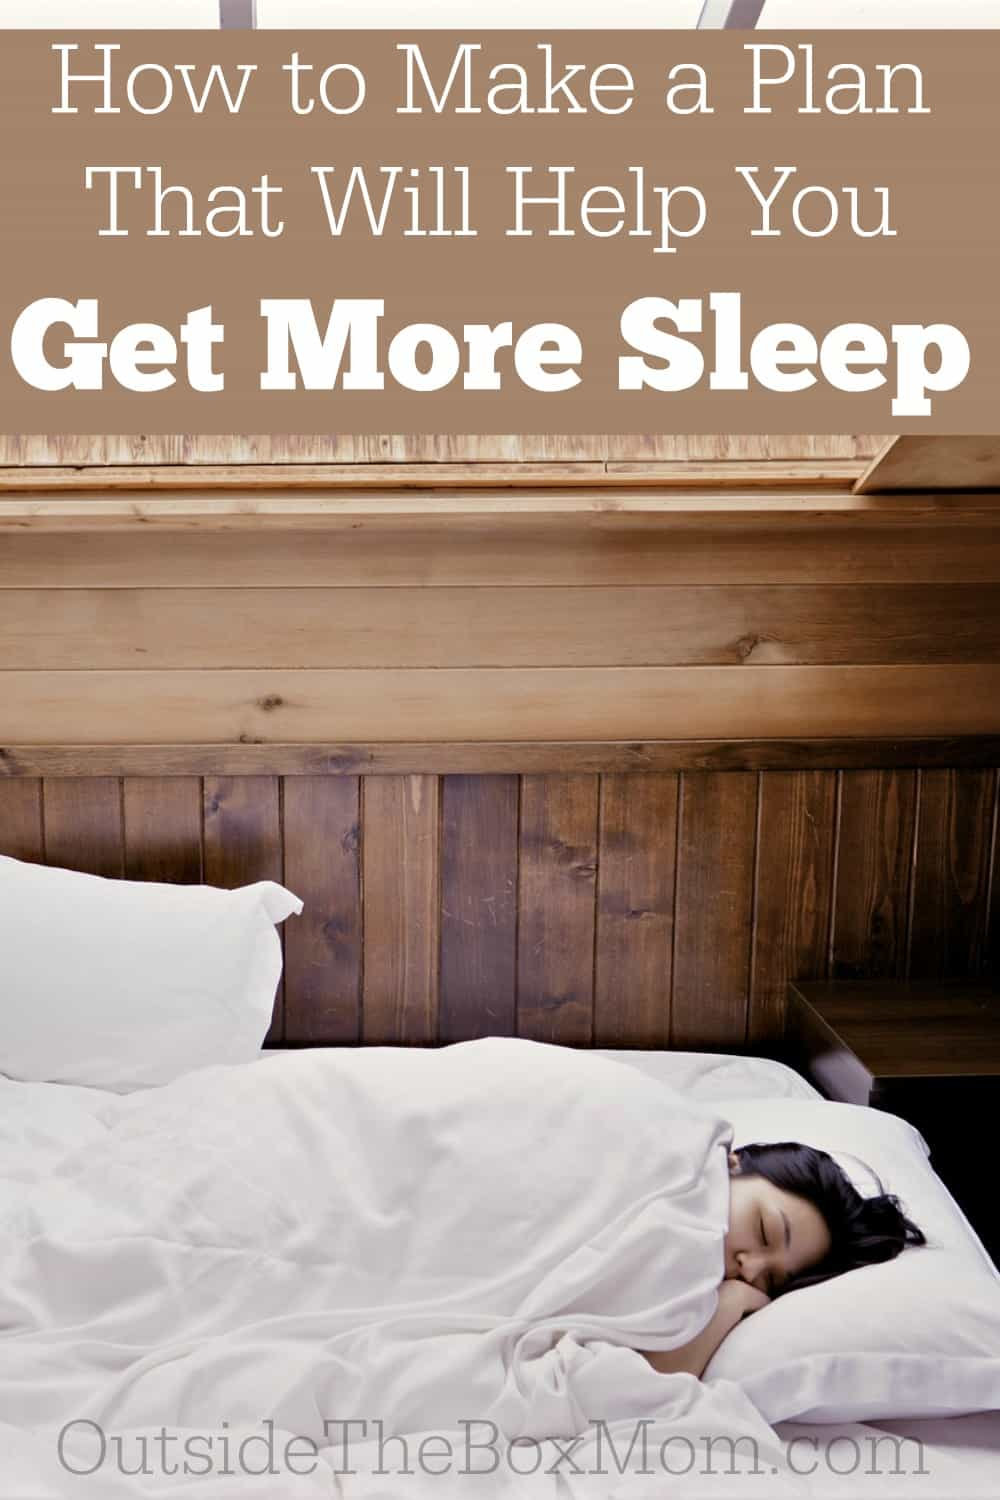 How To Make A Plan That Will Help You Get More Sleep